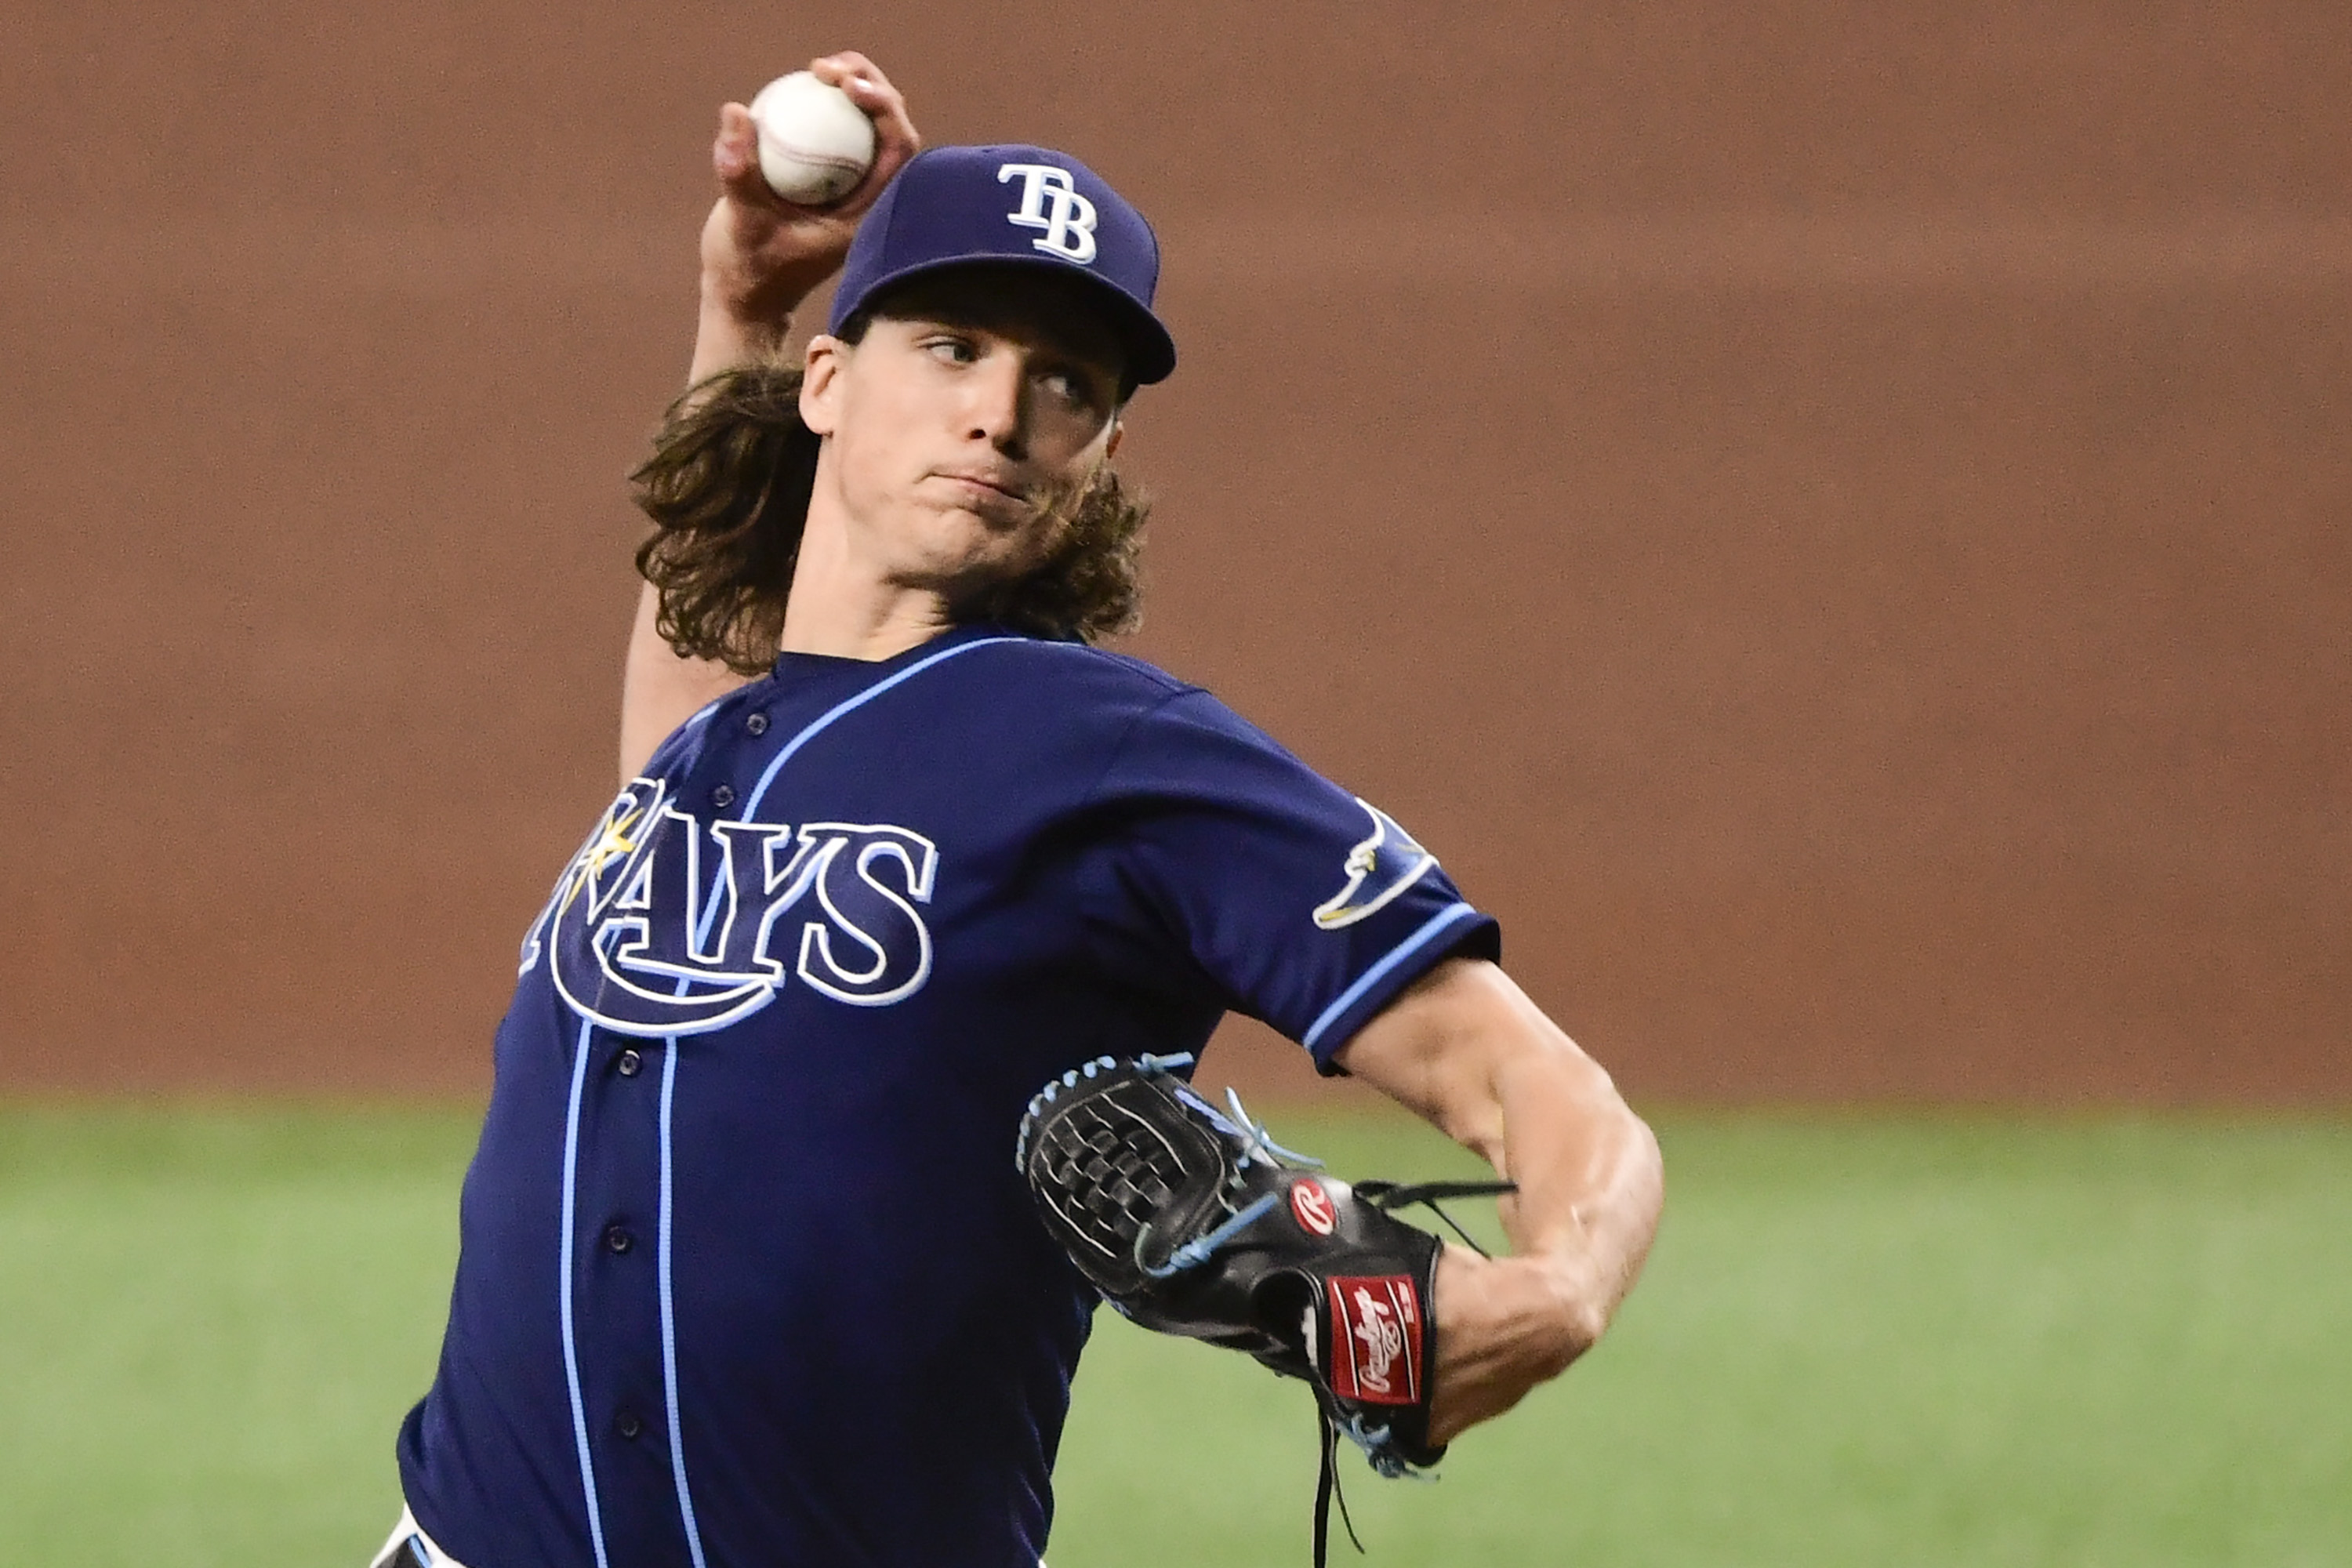 Tyler Glasnow #20 of the Tampa Bay Rays throws a pitch during the fourth inning against the Kansas City Royals at Tropicana Field on May 26, 2021 in St Petersburg, Florida.